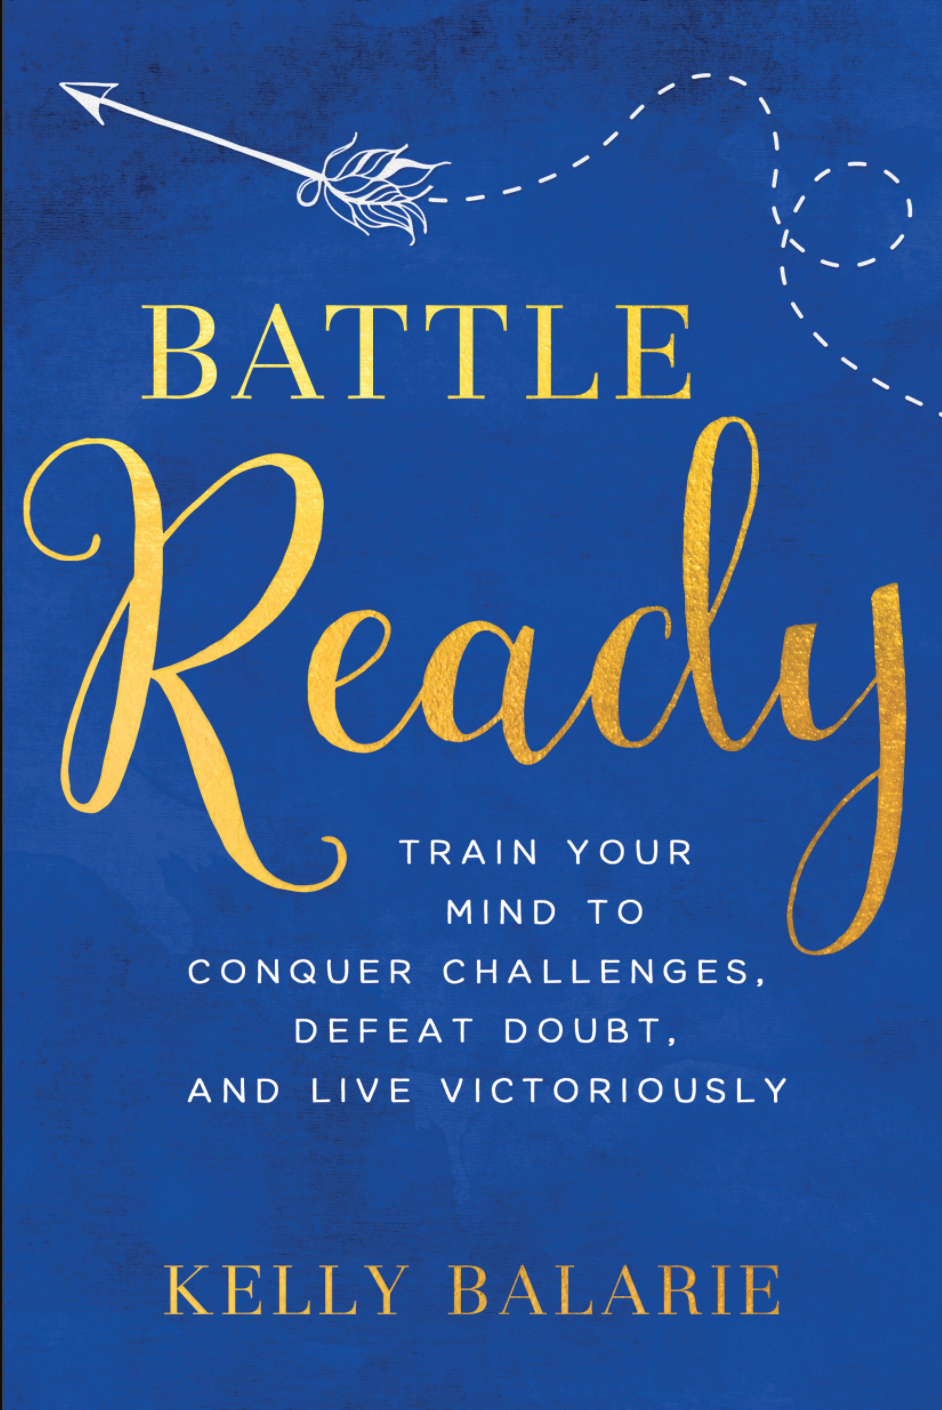 Thoughts: The Blessing of Being Battle Ready – Jeanne Takenaka